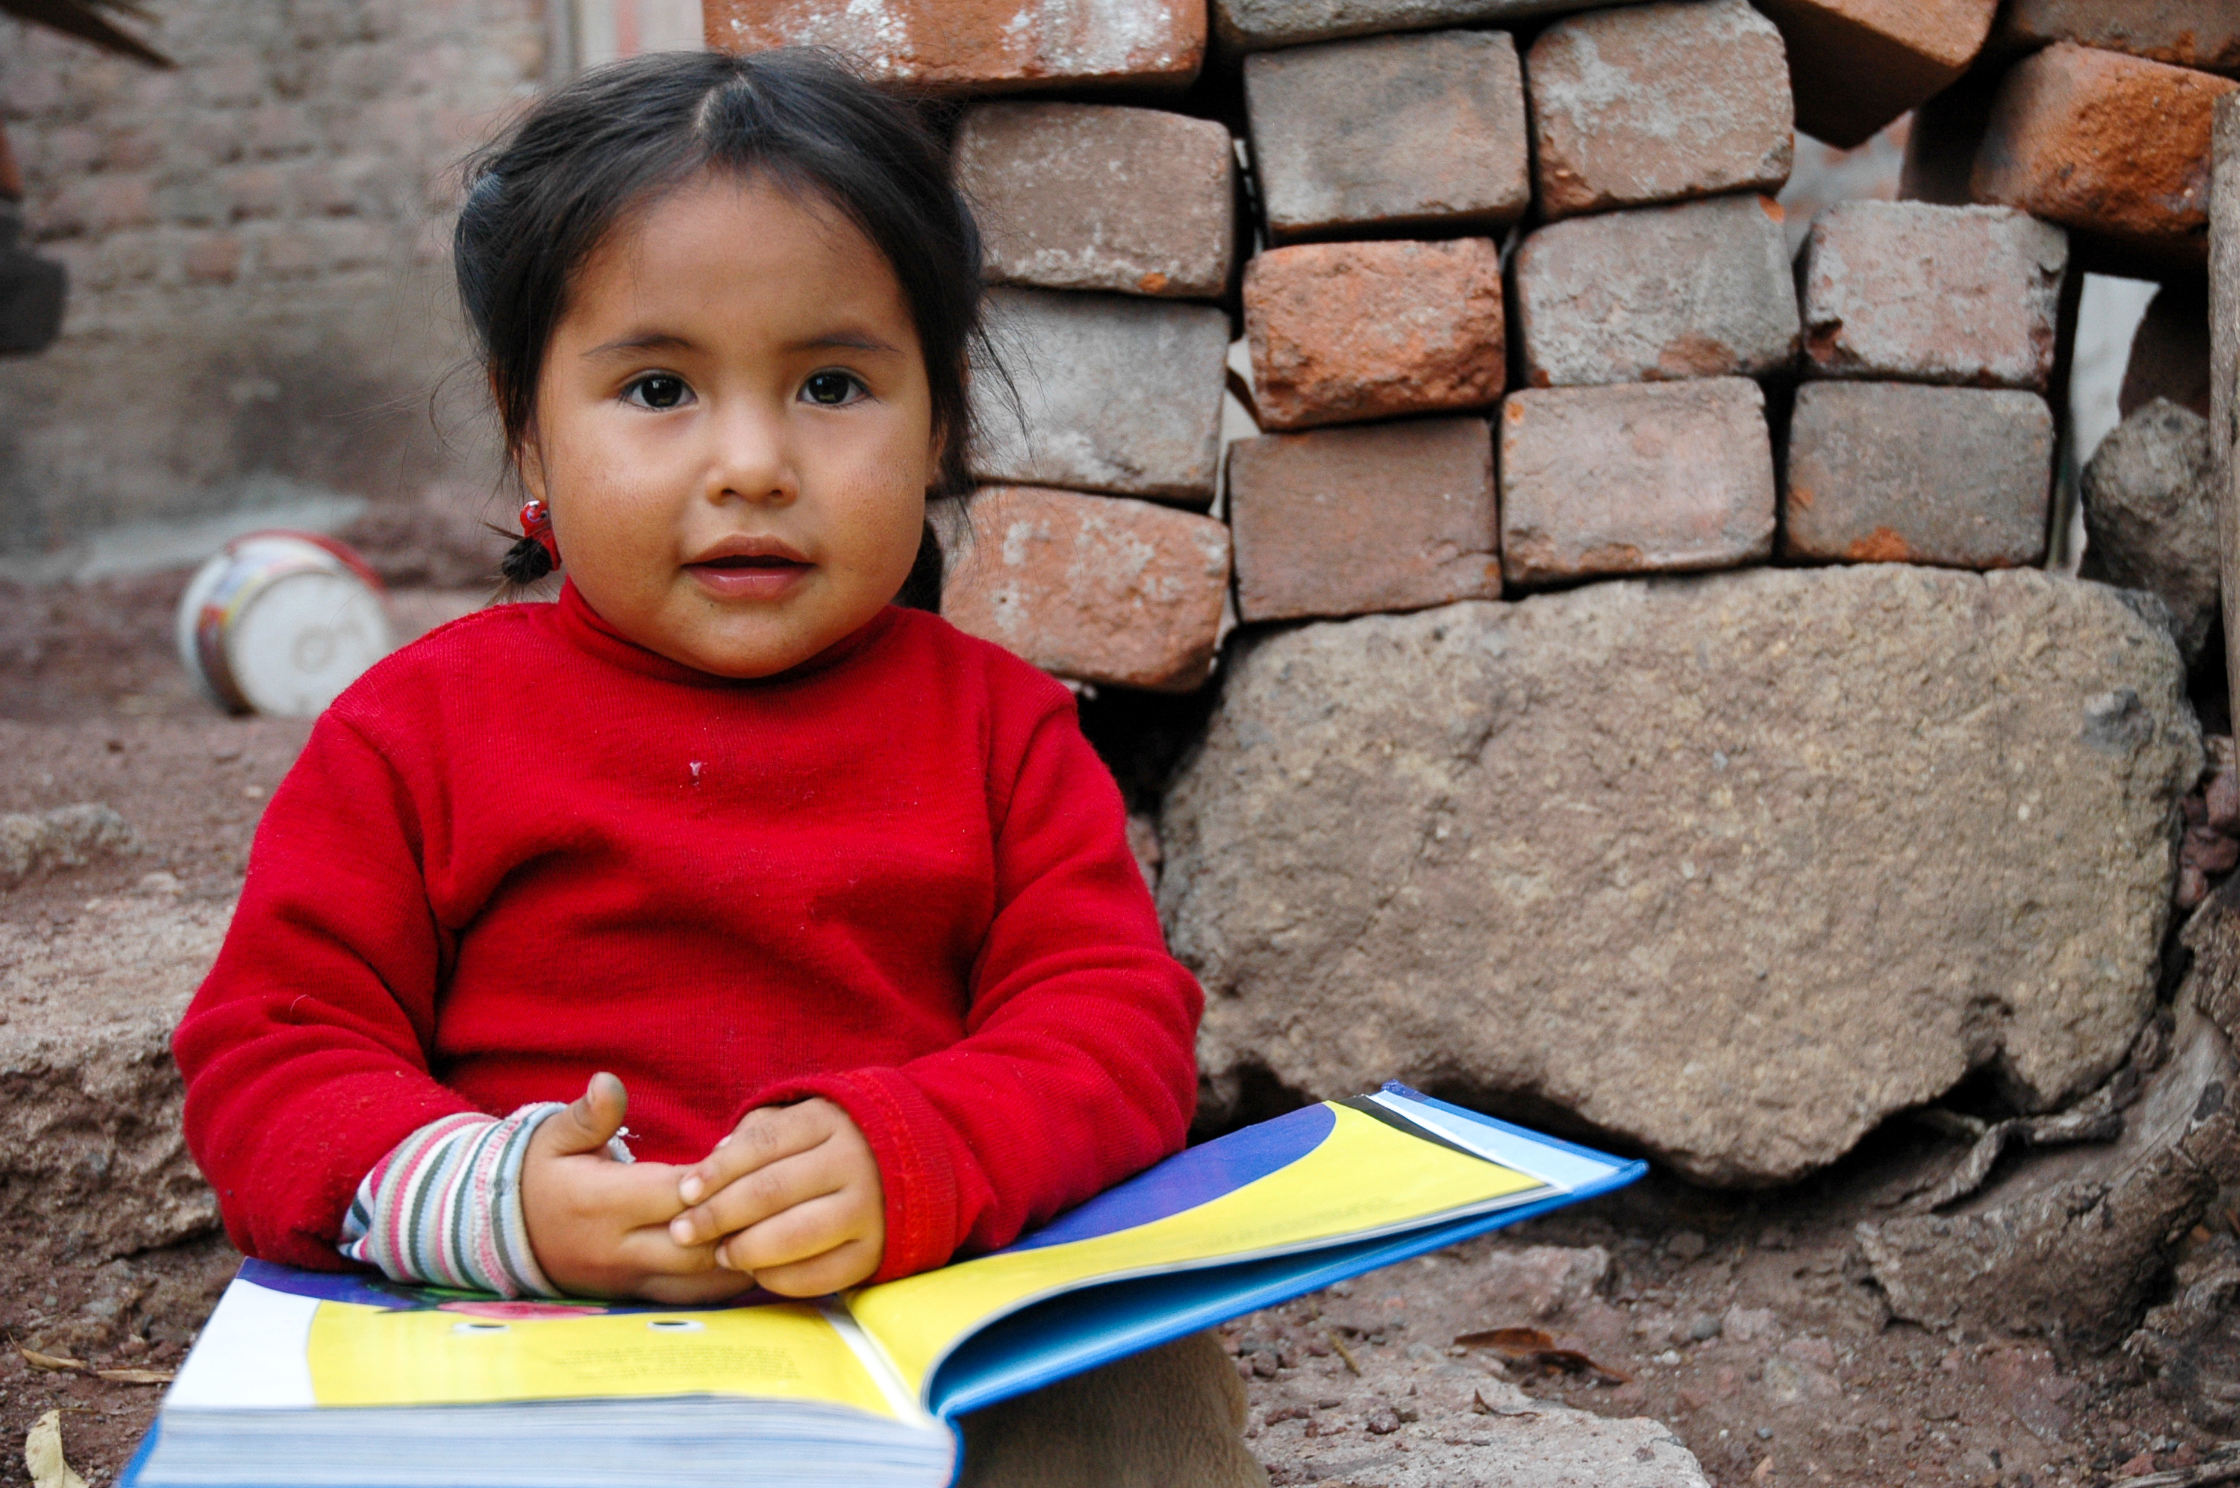 Young child with open book on her lap